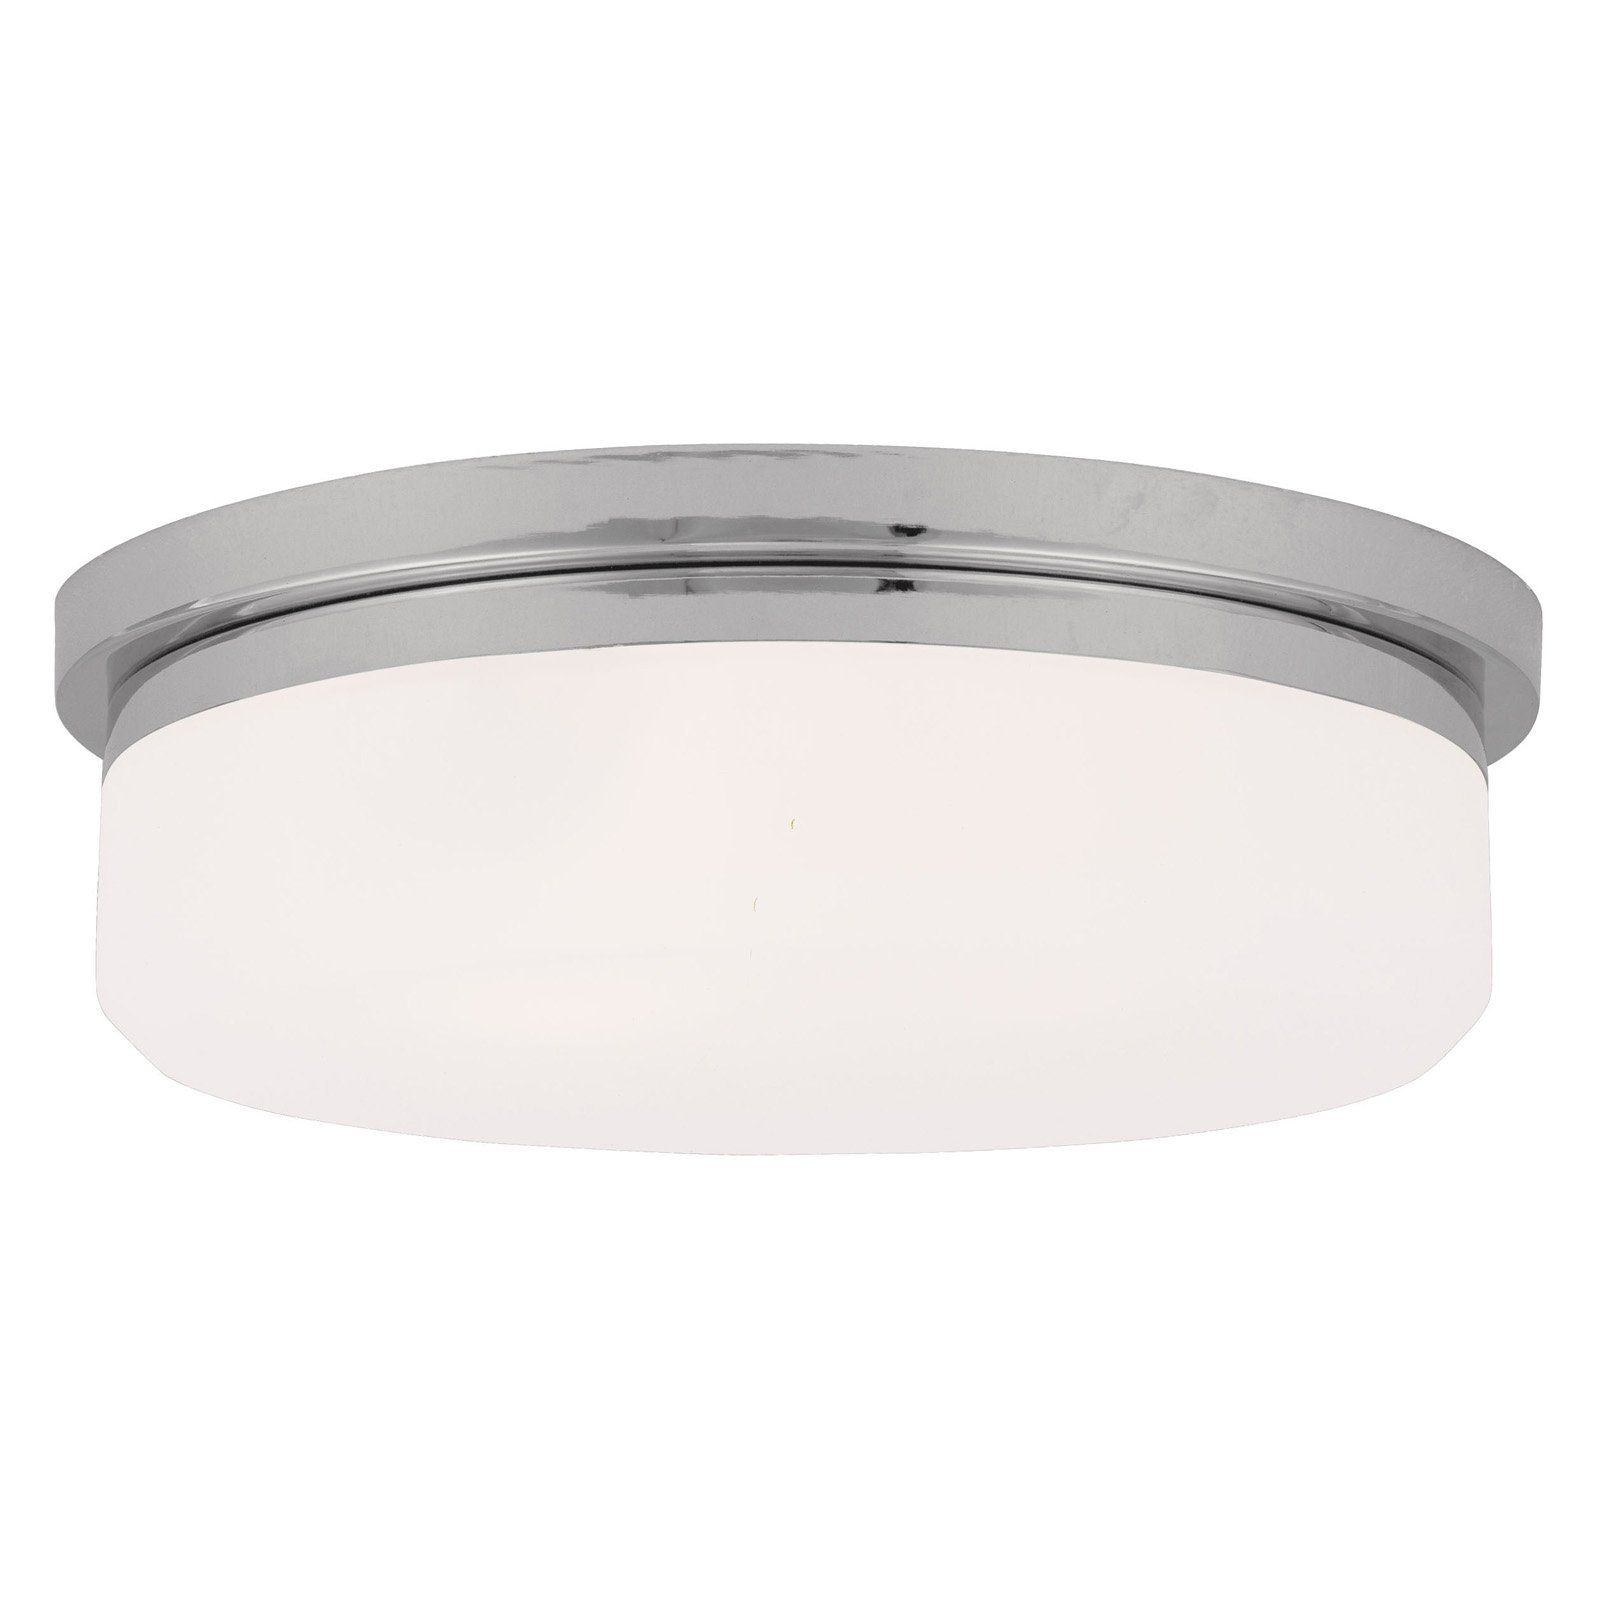 Livex Stratus 7393 05 3 Light Ceiling or Wall Mount in Chrome 7393